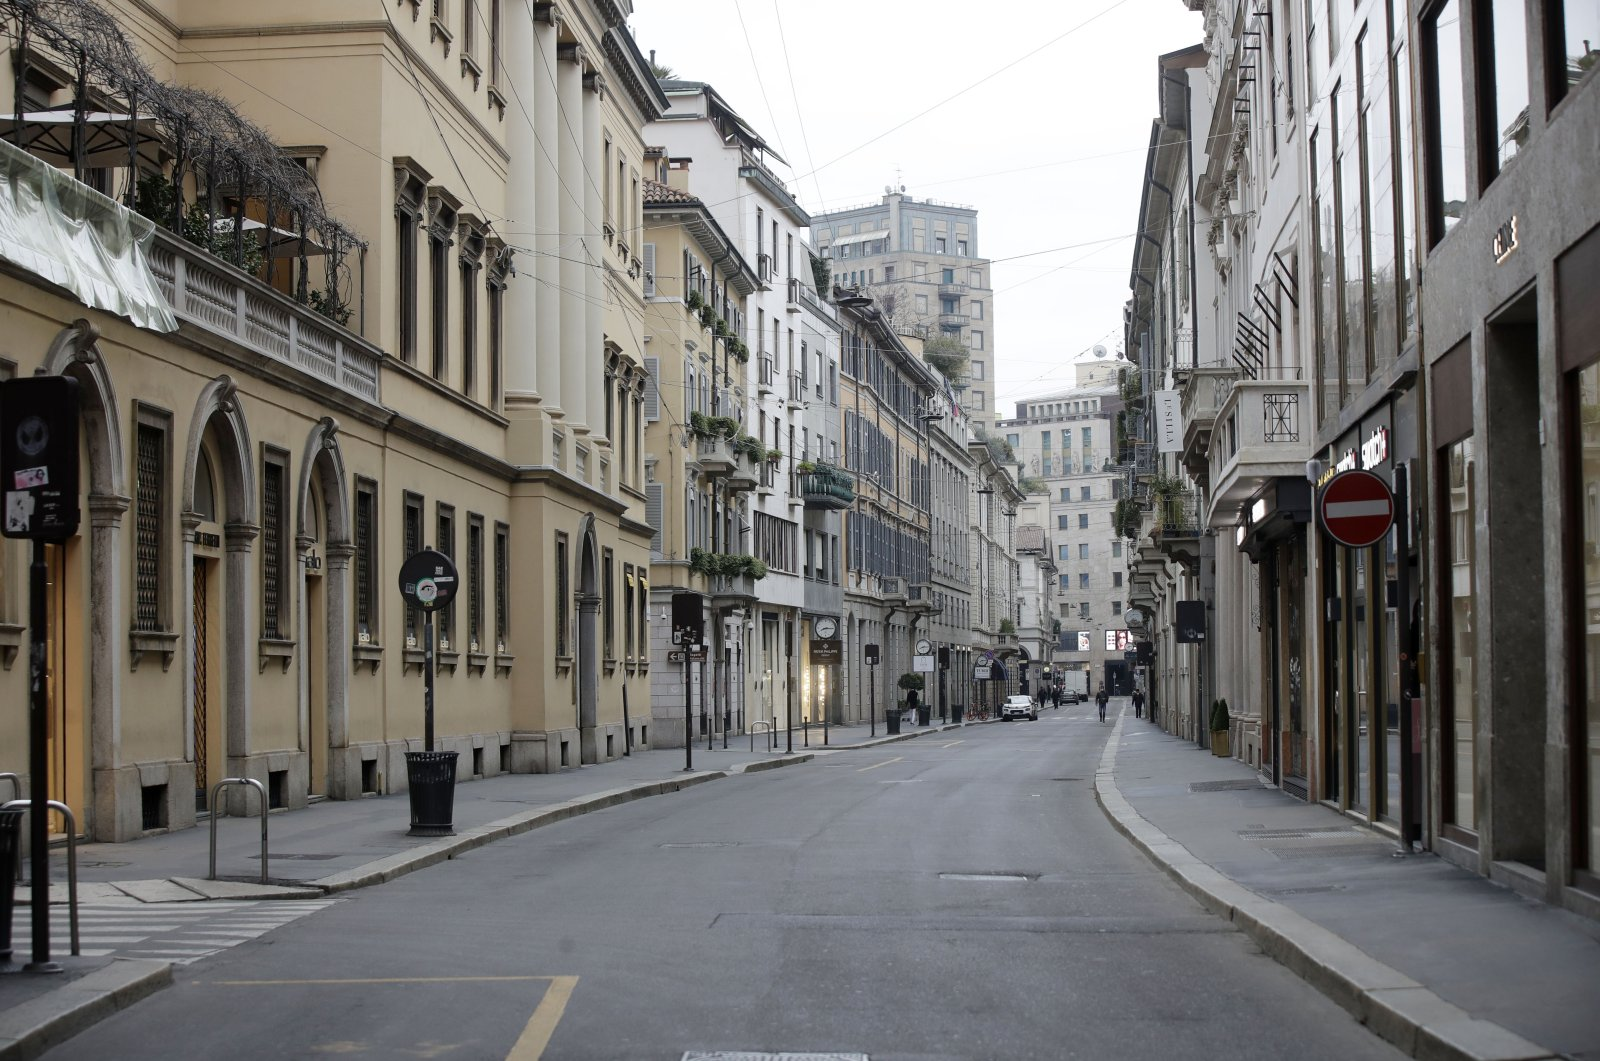 A view of a deserted street in downtown Milan amid the coronavirus locdown, Milan, Italy, March 12, 2020. (AP Photo)